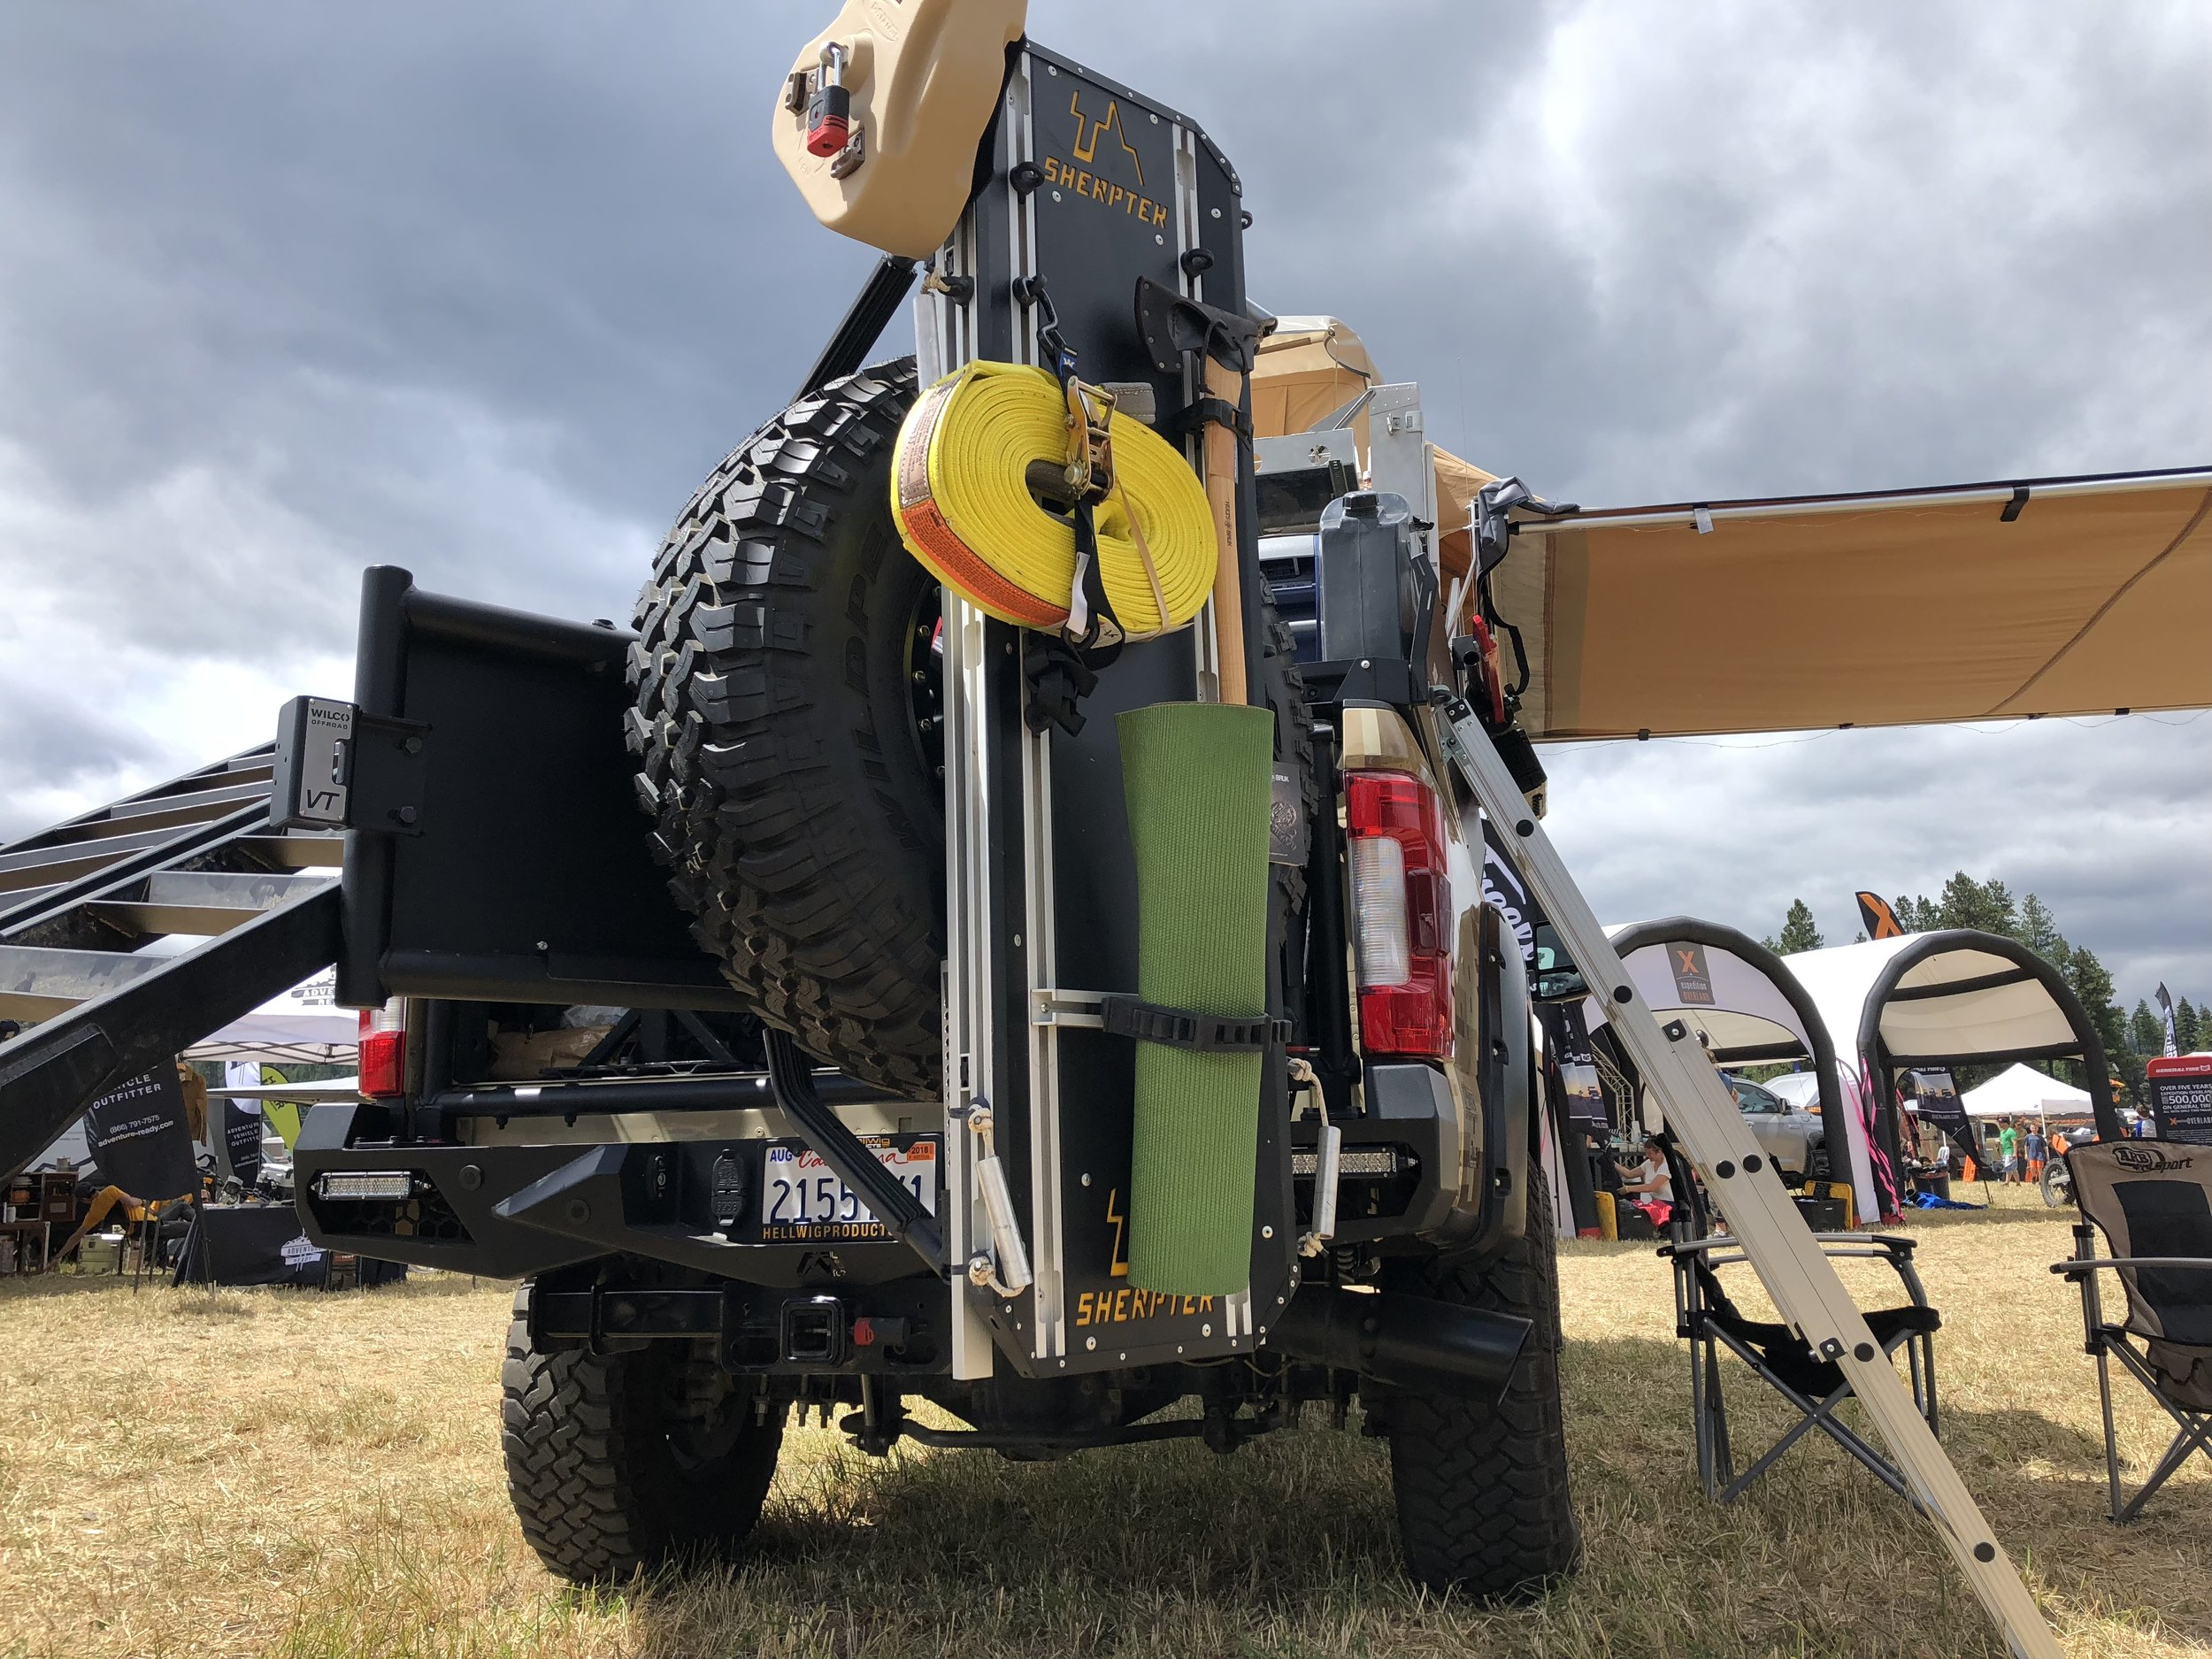 Ultimate gear-hauling solution that mounts to any ladder, rack system and hard surface, including your spare tire, and can carry up to 1,000 pounds of gear and supplies